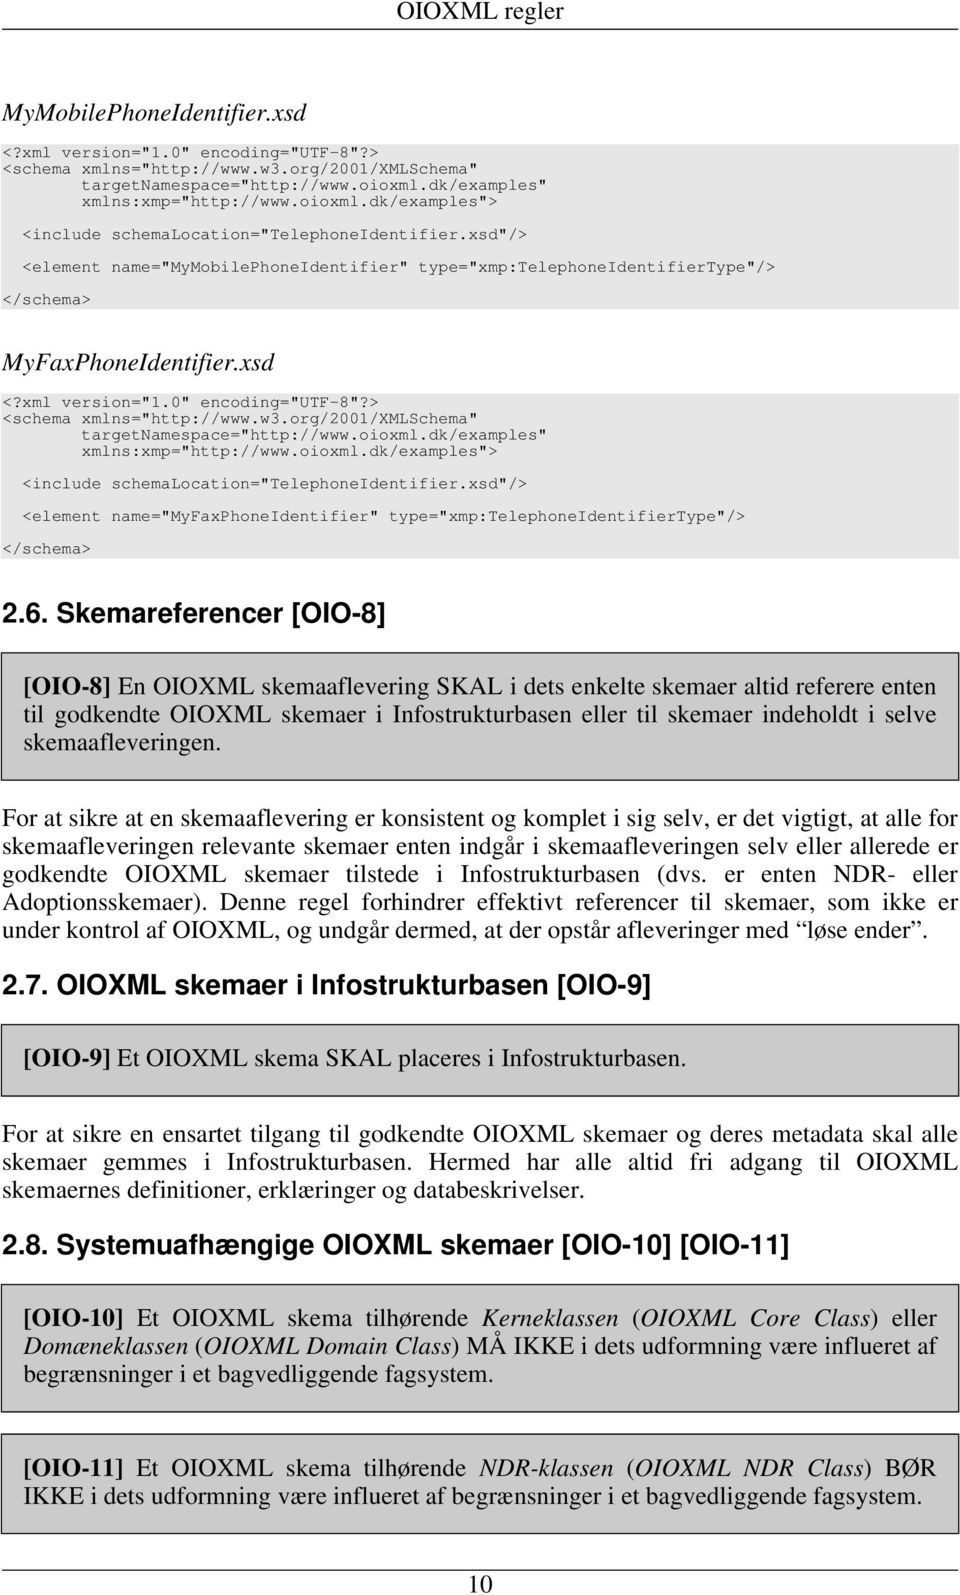 "xml version=""1.0"" encoding=""utf-8""?> <schema xmlns=""http://www.w3.org/2001/xmlschema"" targetnamespace=""http://www.oioxml.dk/examples"" xmlns:xmp=""http://www.oioxml.dk/examples""> <include schemalocation=""telephoneidentifier."